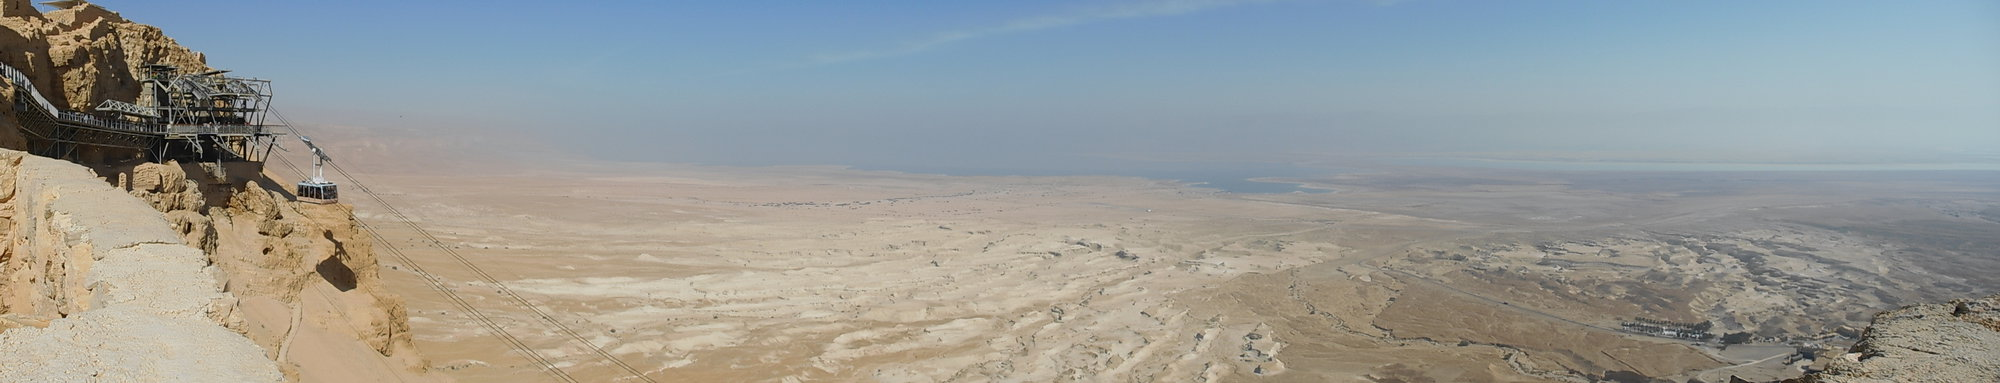 a vista from Masada fortress